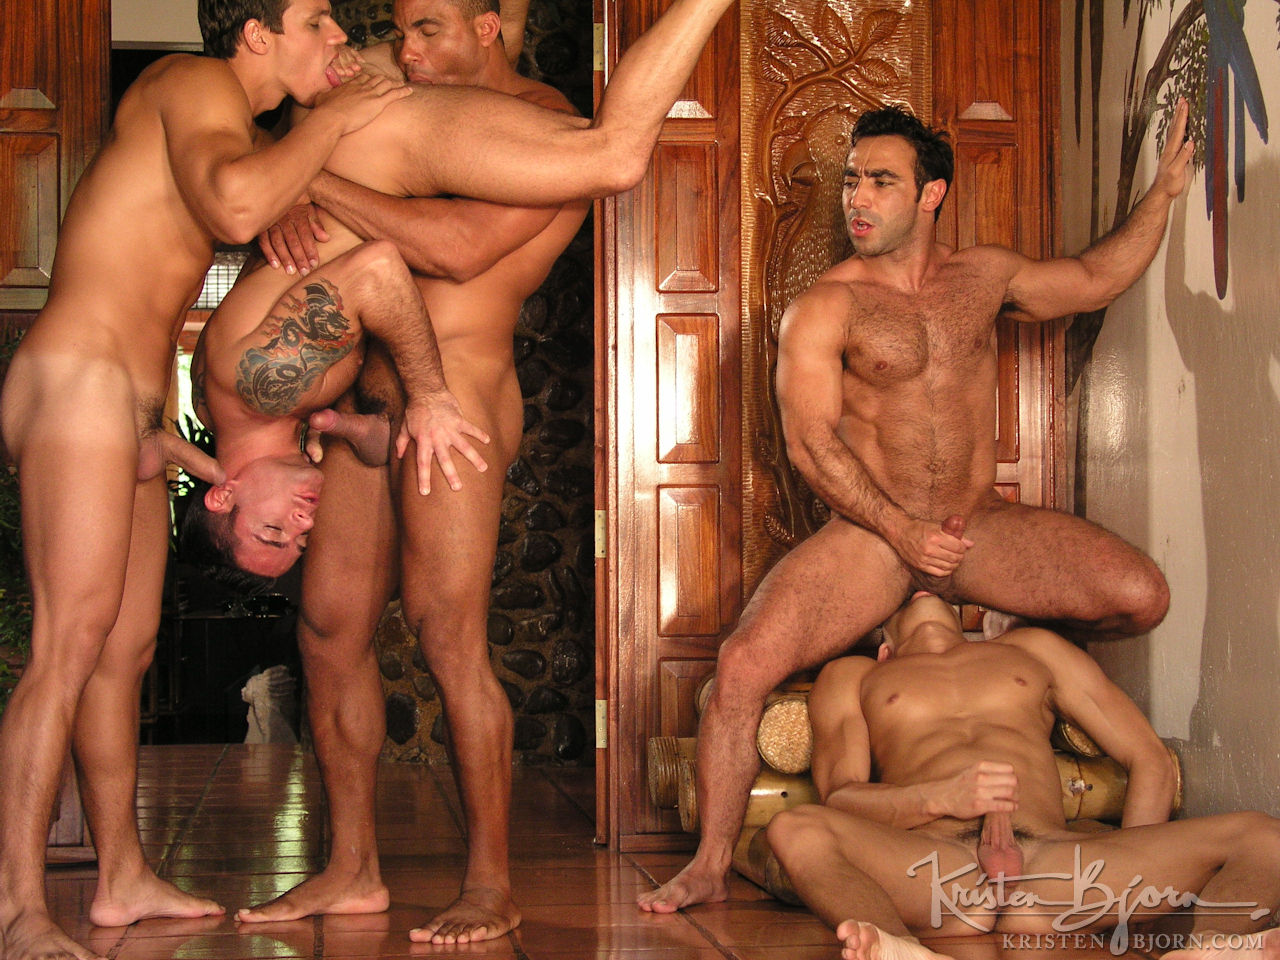 from Jordan pics of gay orgies